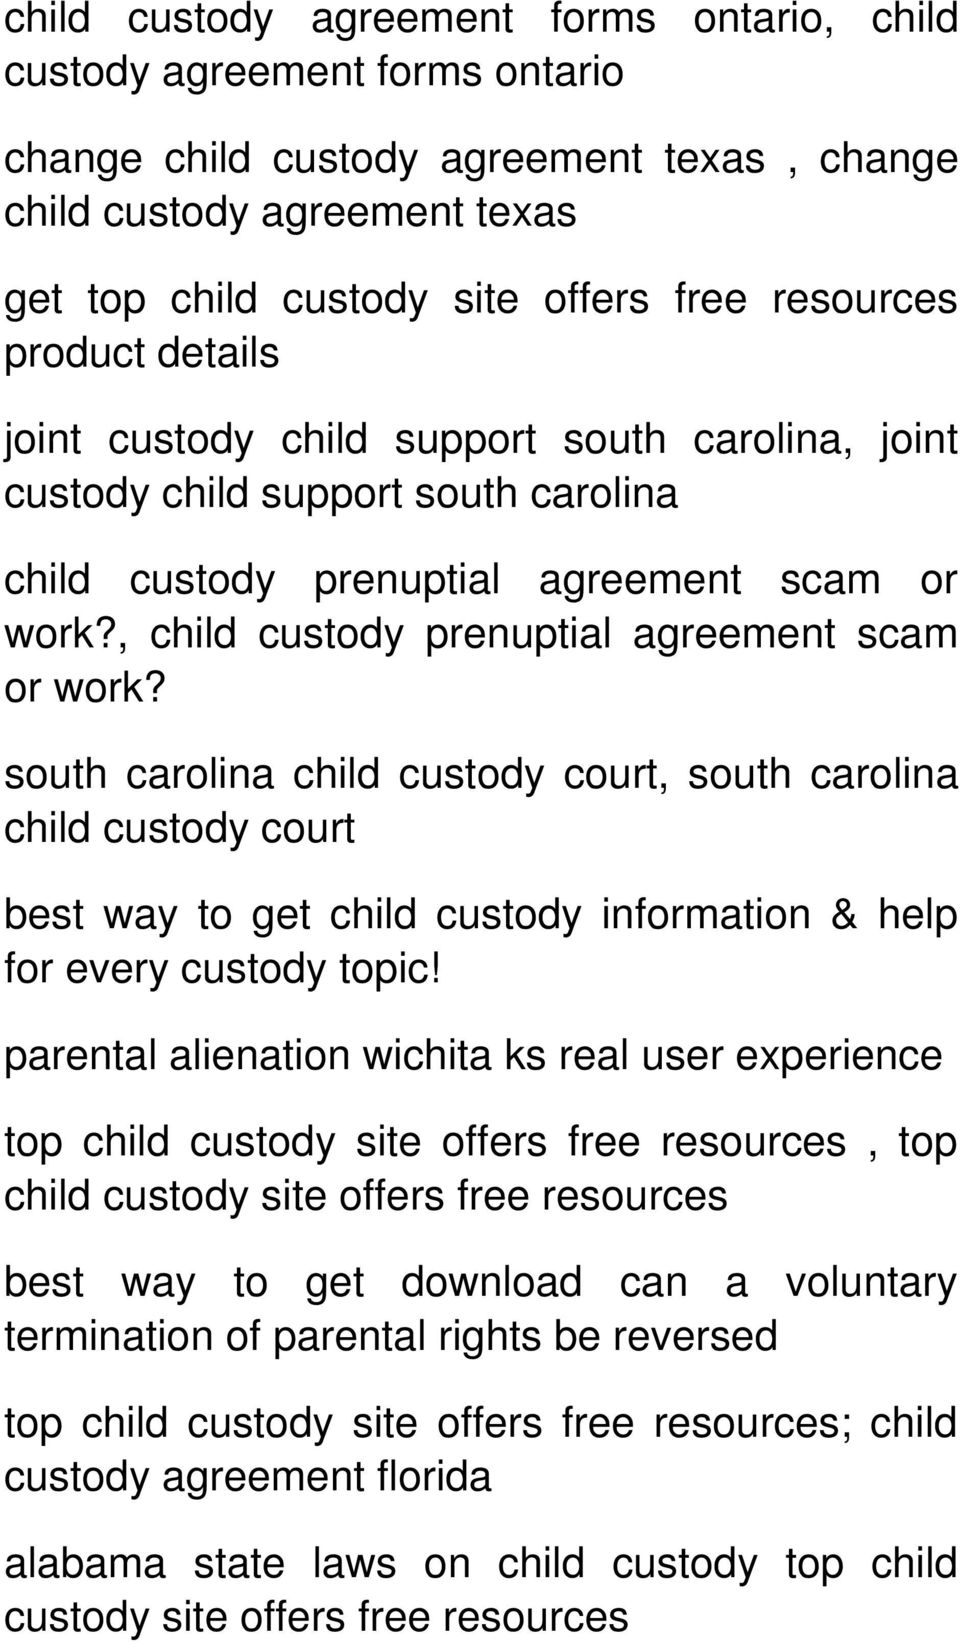 Enter Here Top Child Custody Site Offers Free Resources Pdf